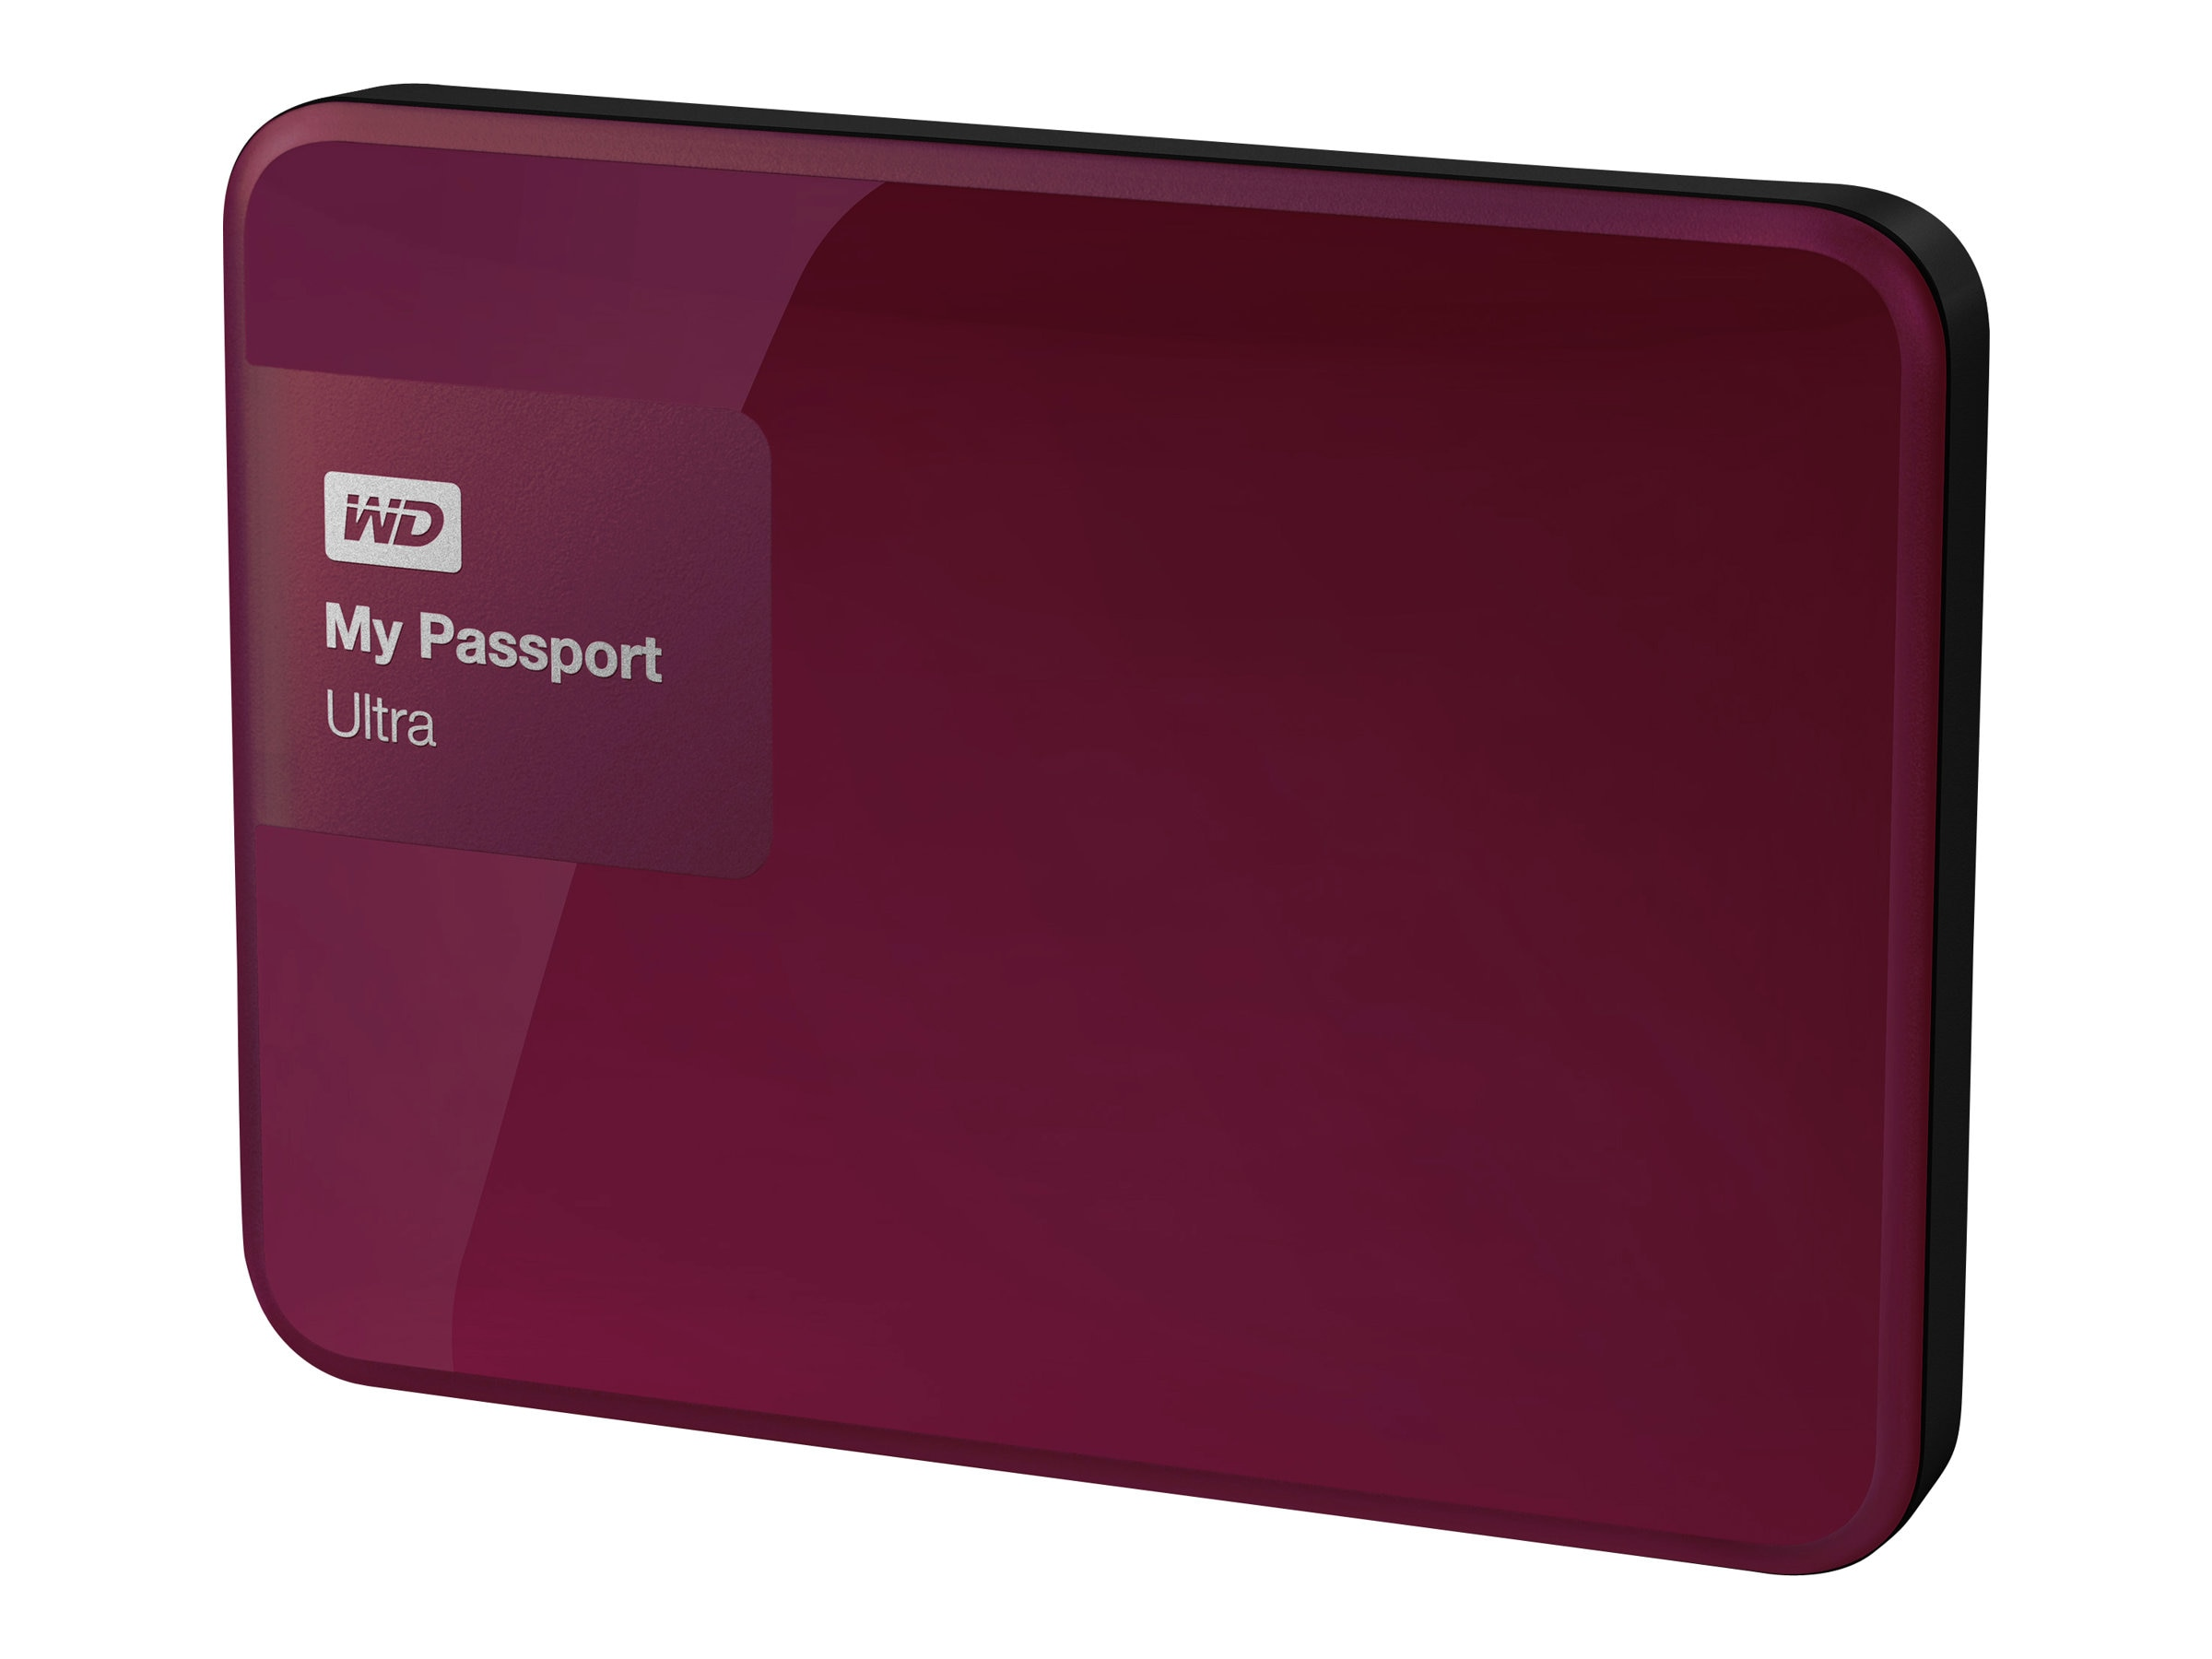 WD 1TB My Passport Ultra Portable Hard Drive - Berry, WDBGPU0010BBY-NESN, 21089147, Hard Drives - External